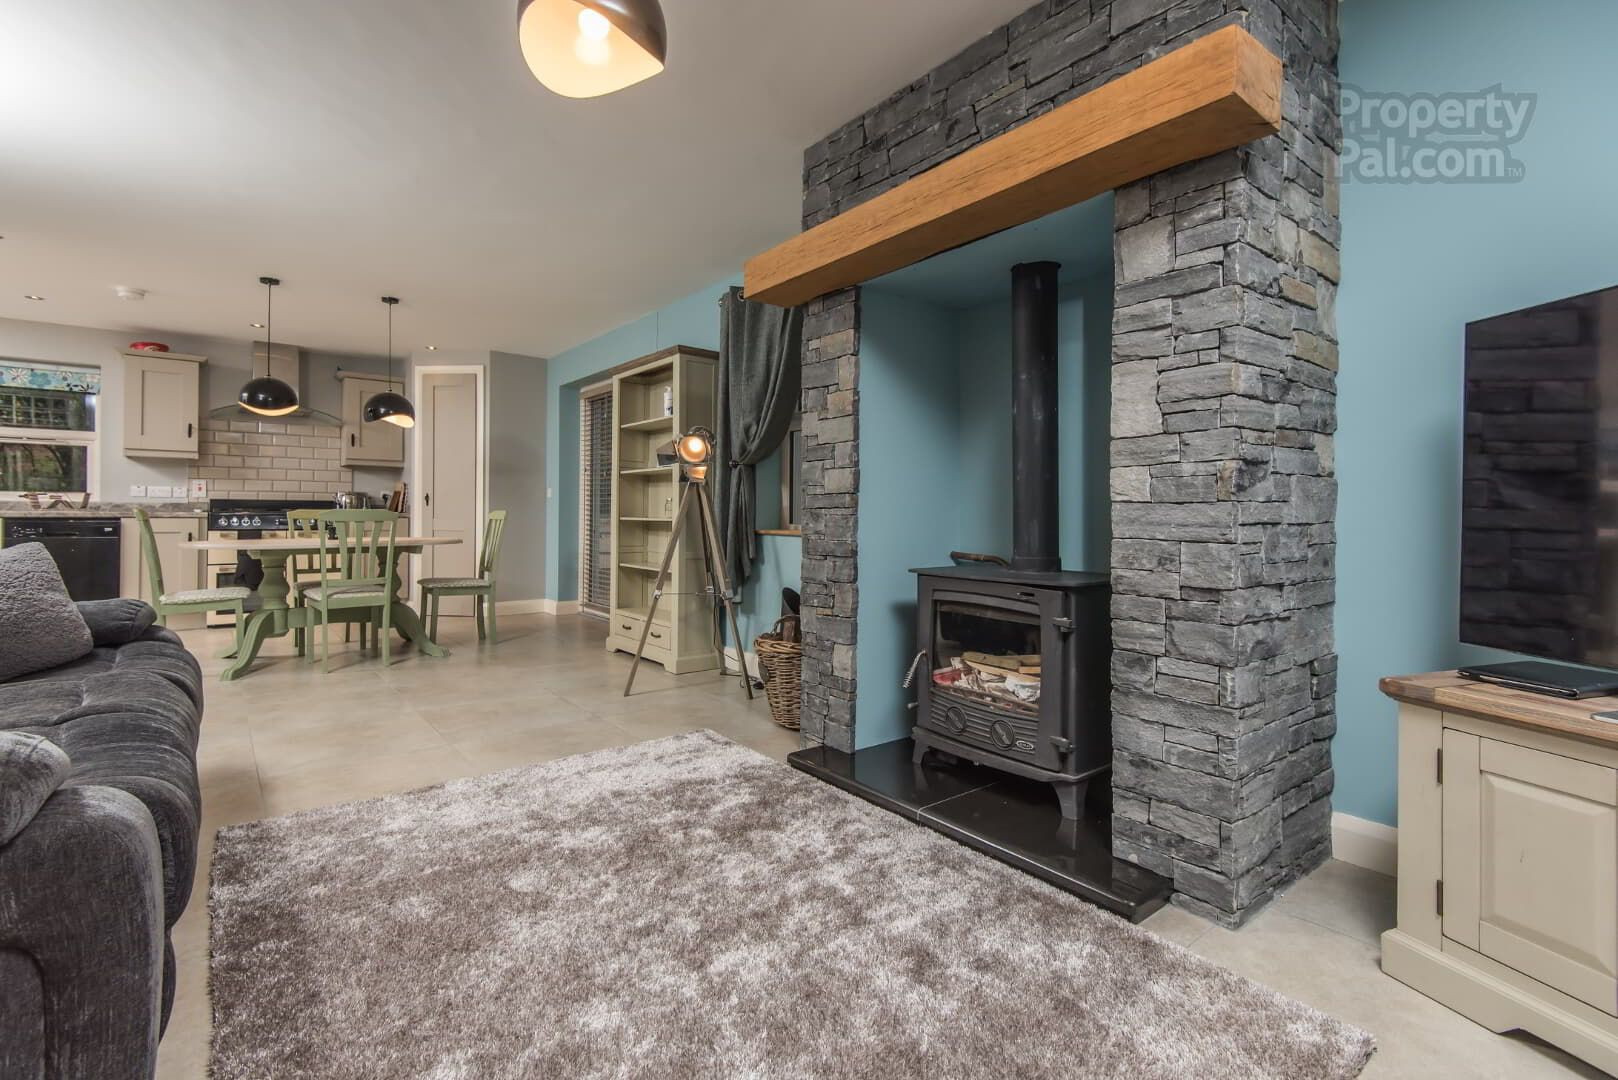 33 Ballycrummy Road, Armagh Gray interior, Property for